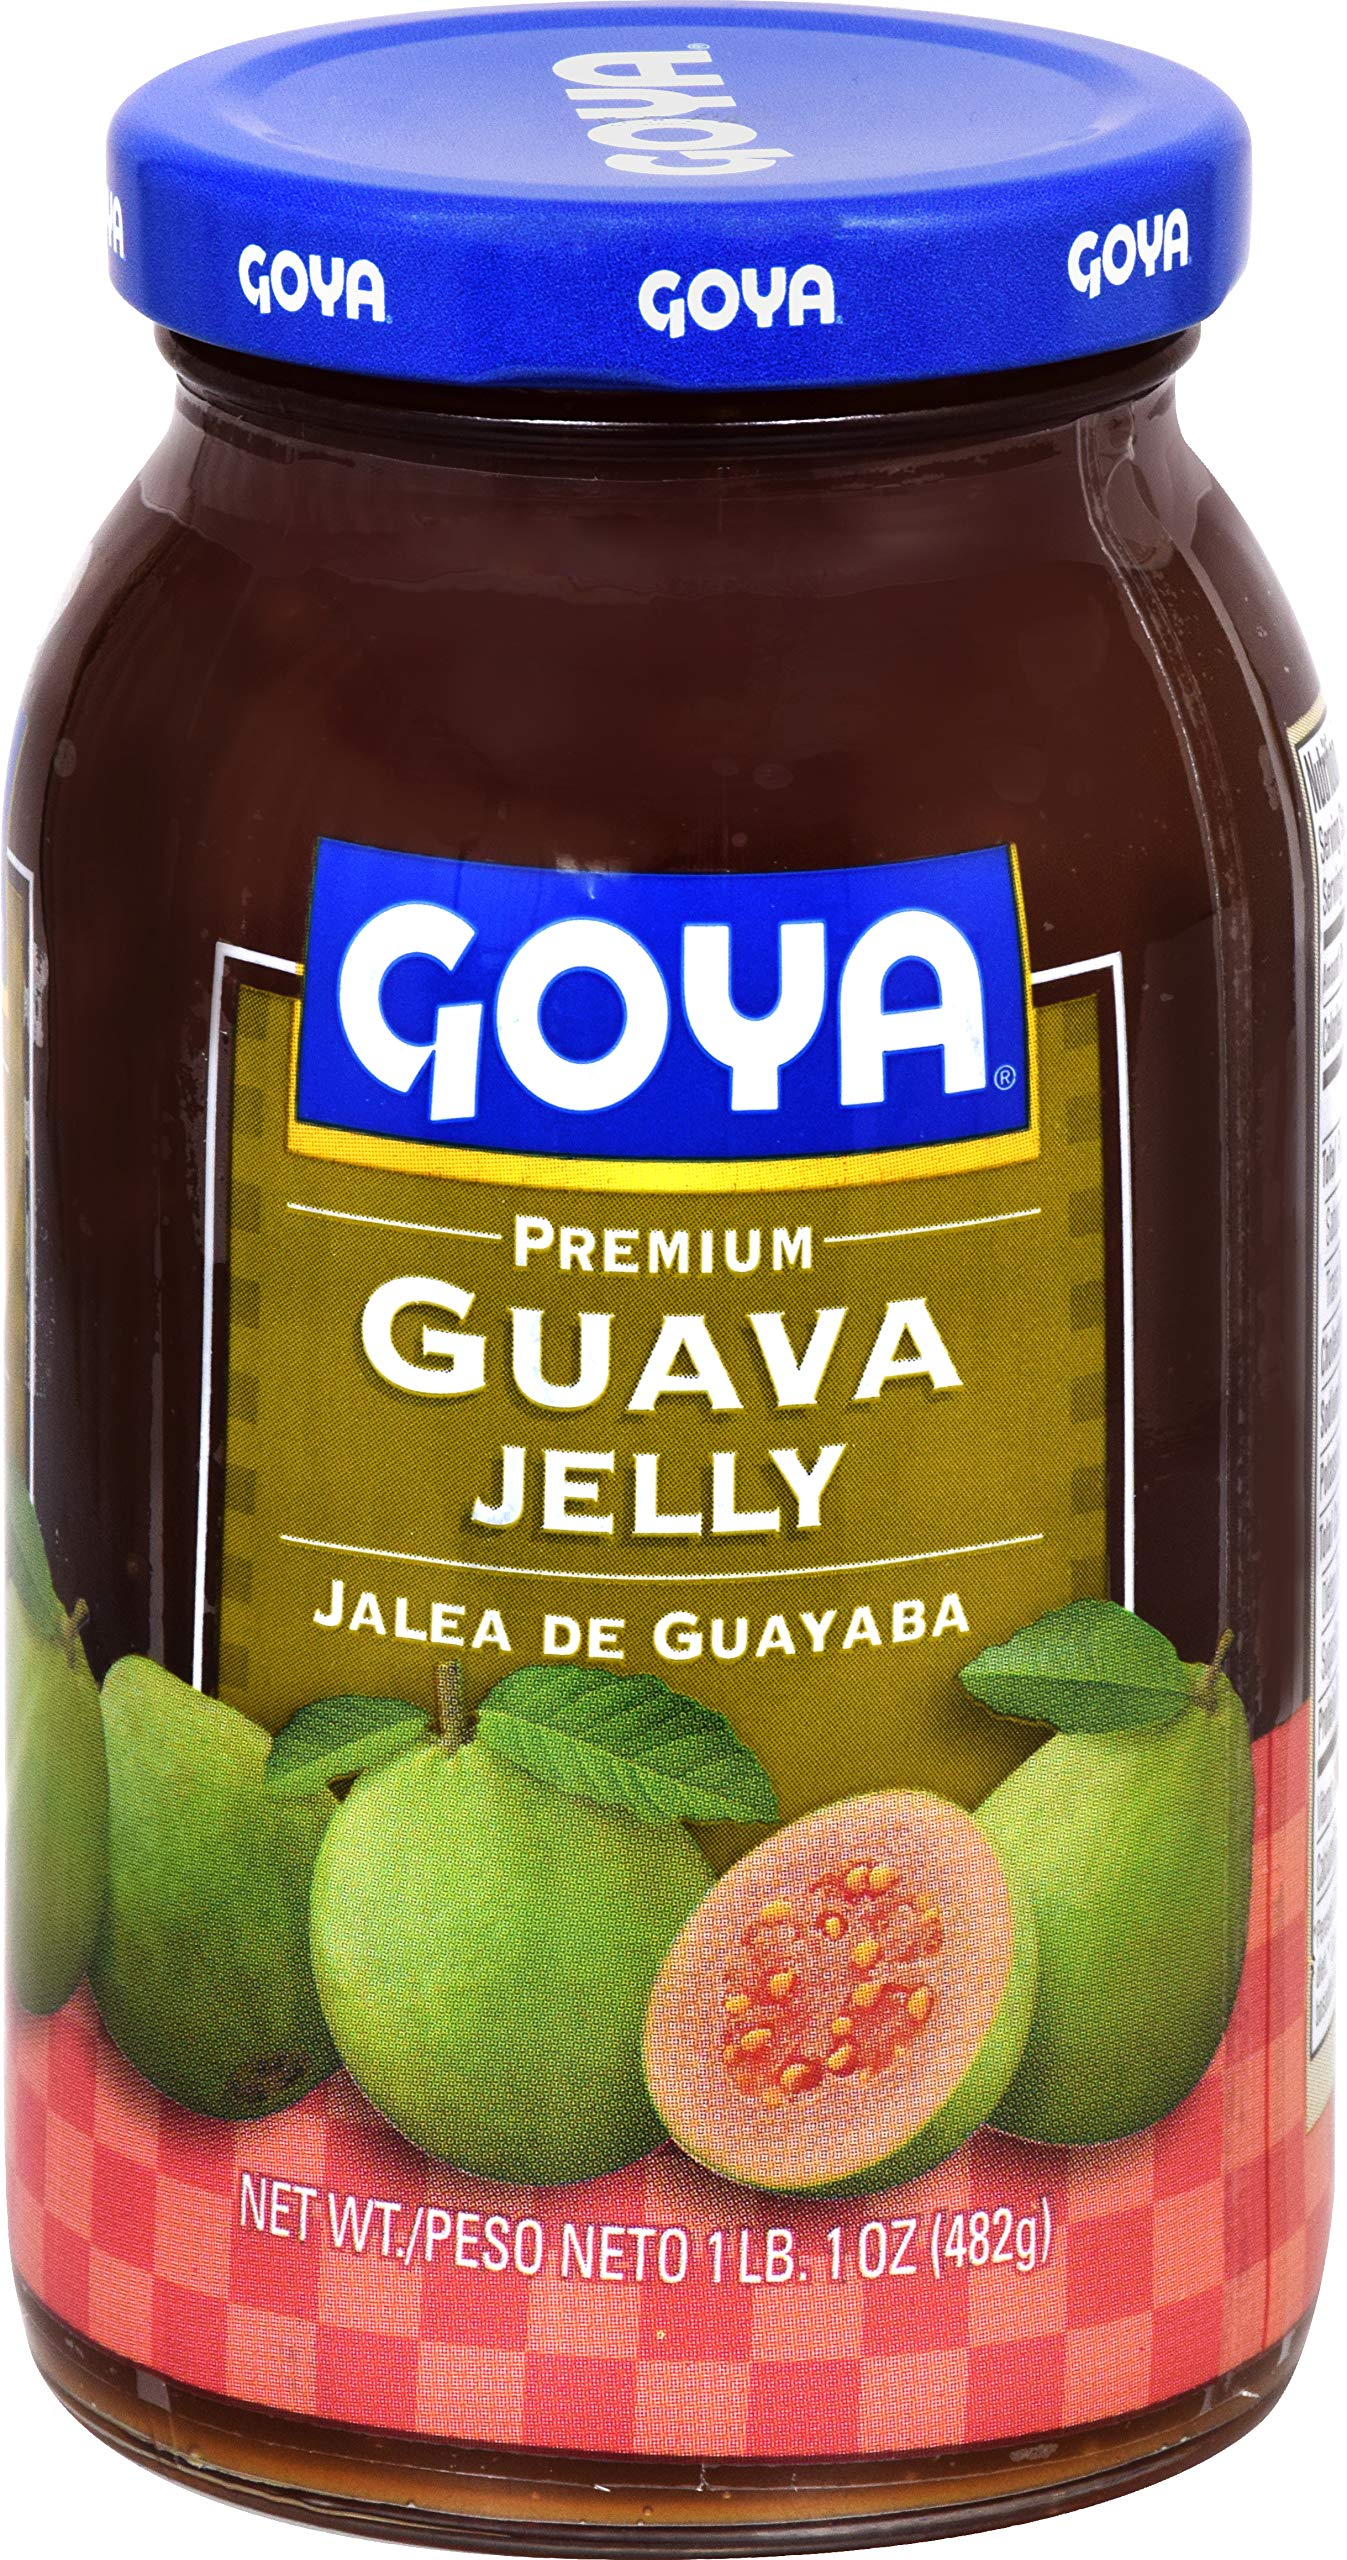 Goya Guava Jelly, Glass Jar, 17 oz